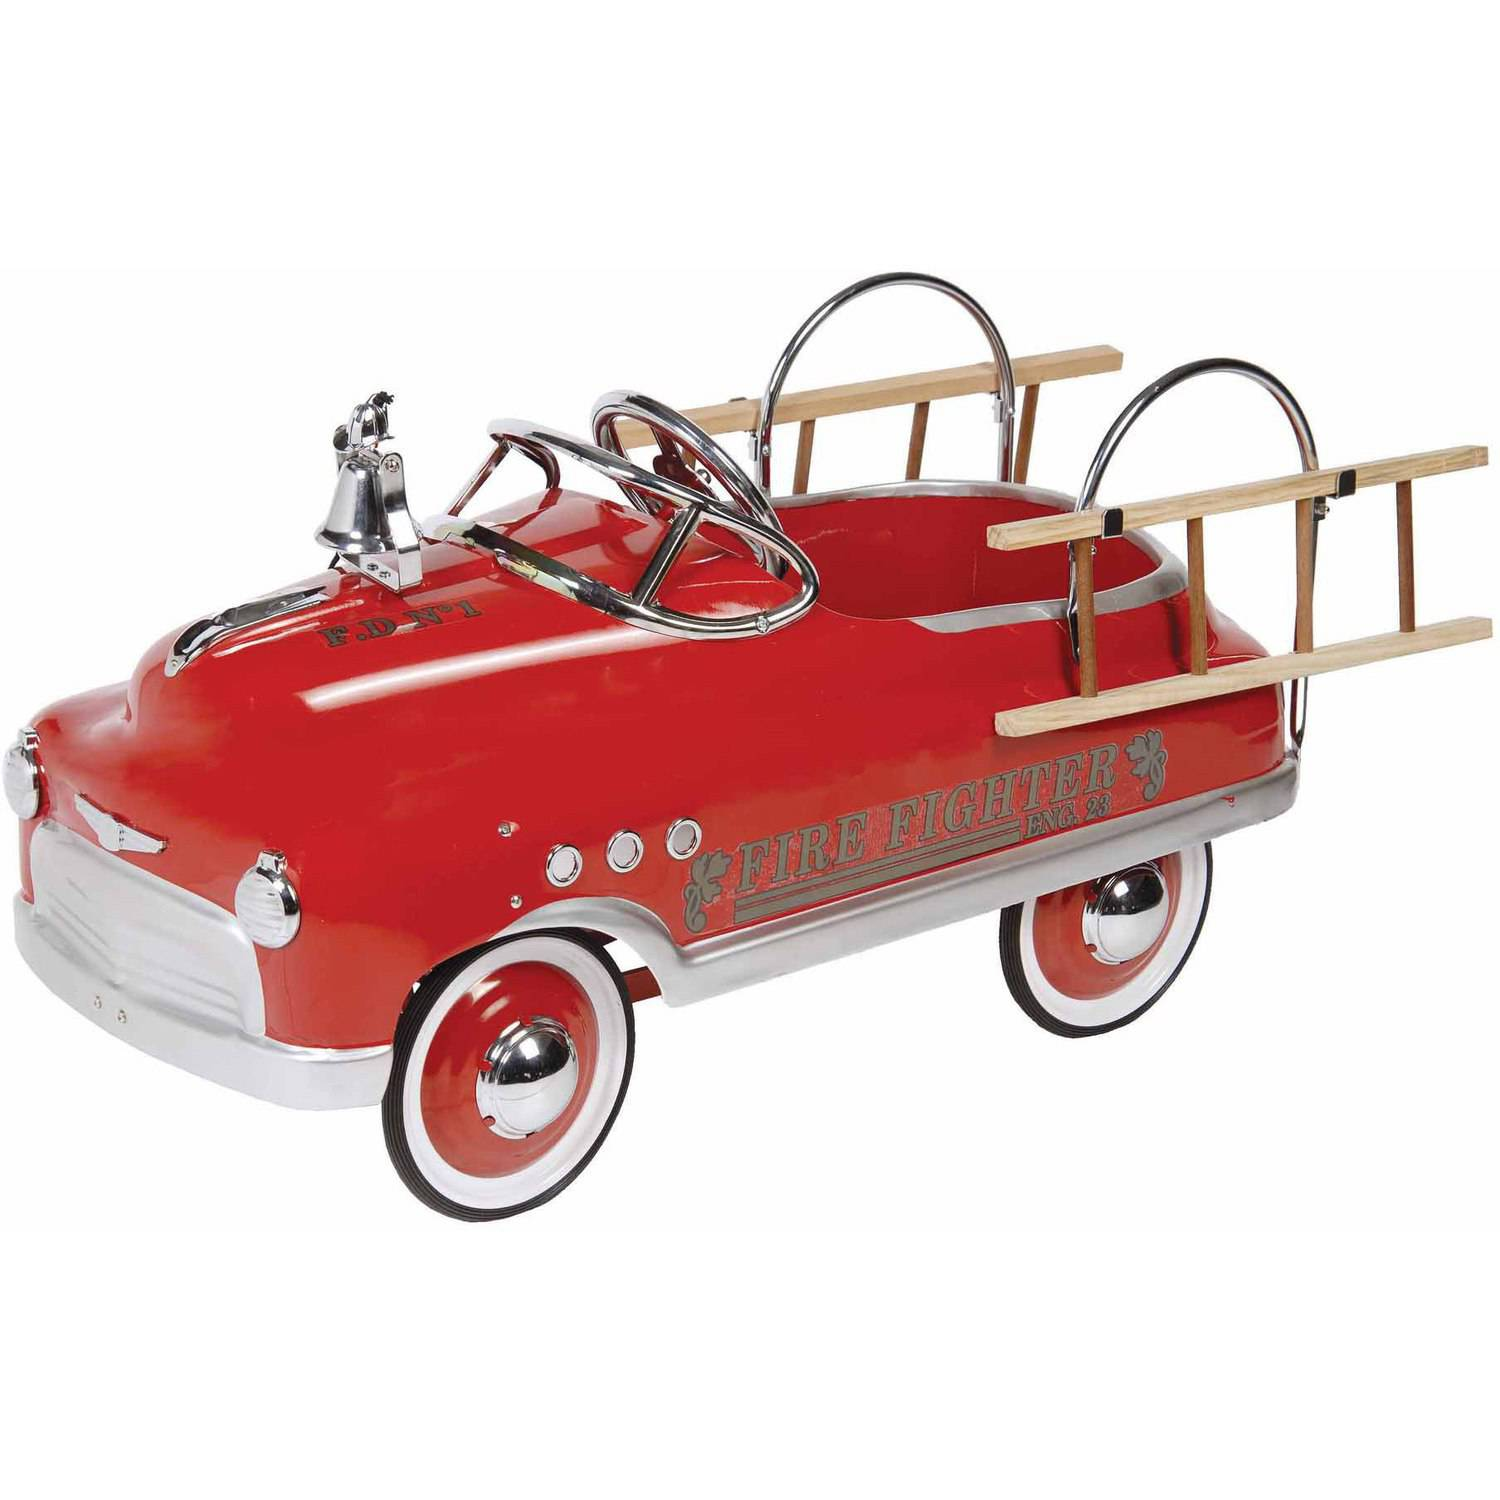 Fire Fighter Comet Sedan Pedal Car by Dexton Kids